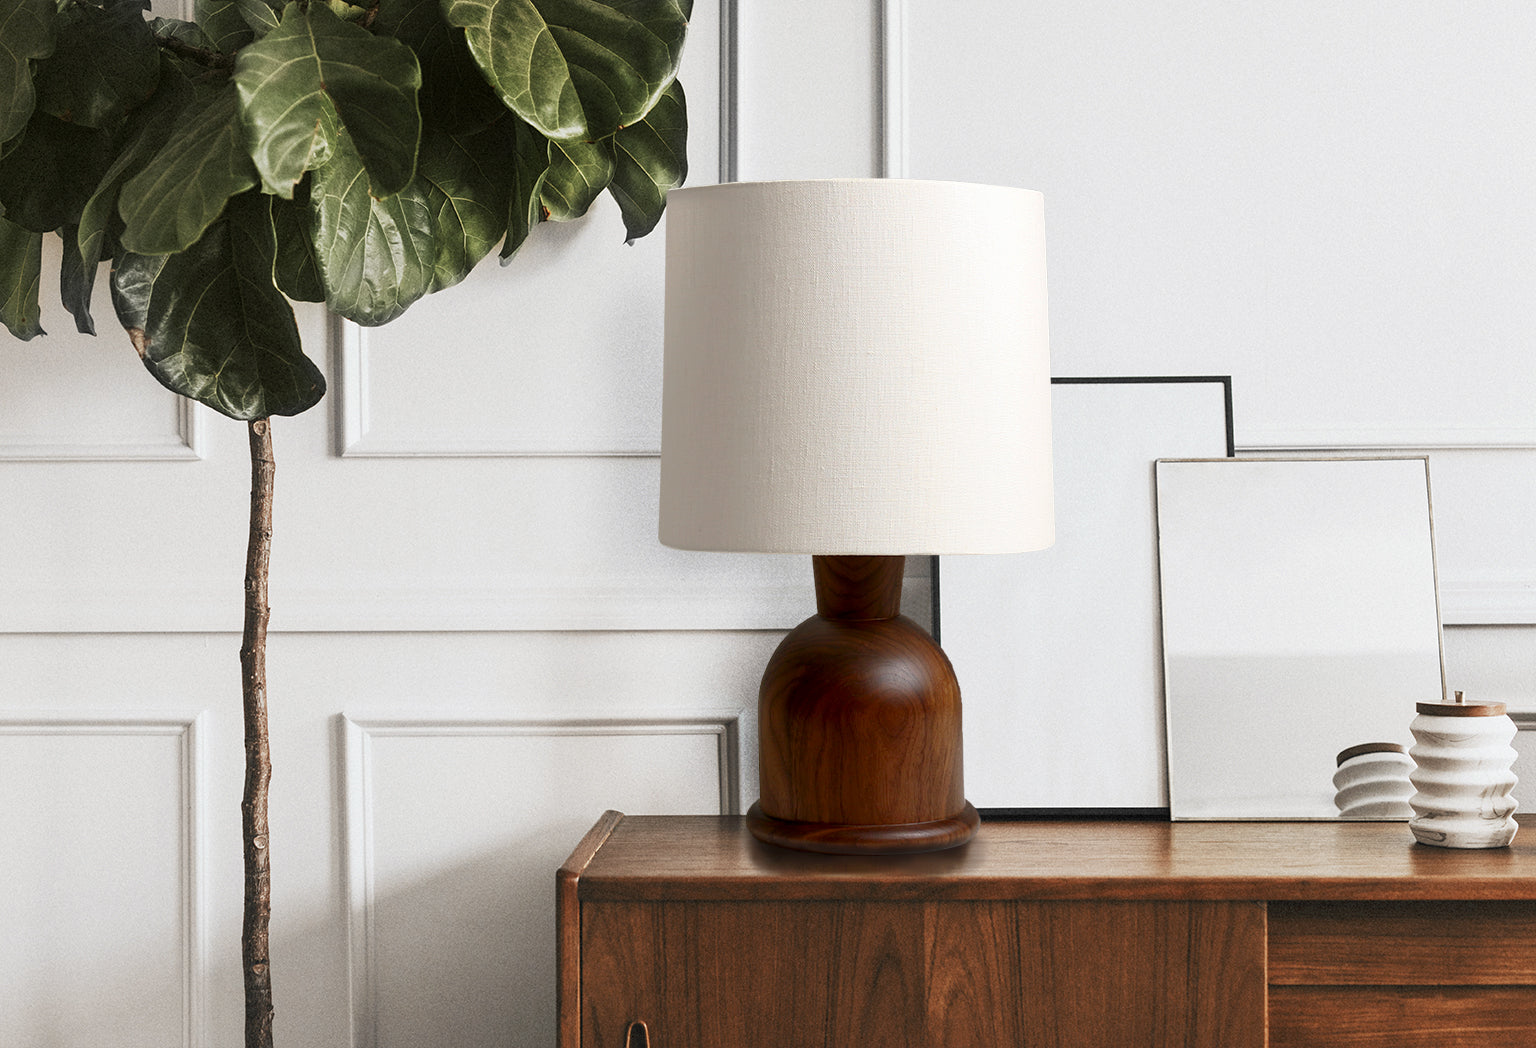 Beacon Table Lamp by Studio DUNN with cream linen shade and walnut base on credenza with house plant